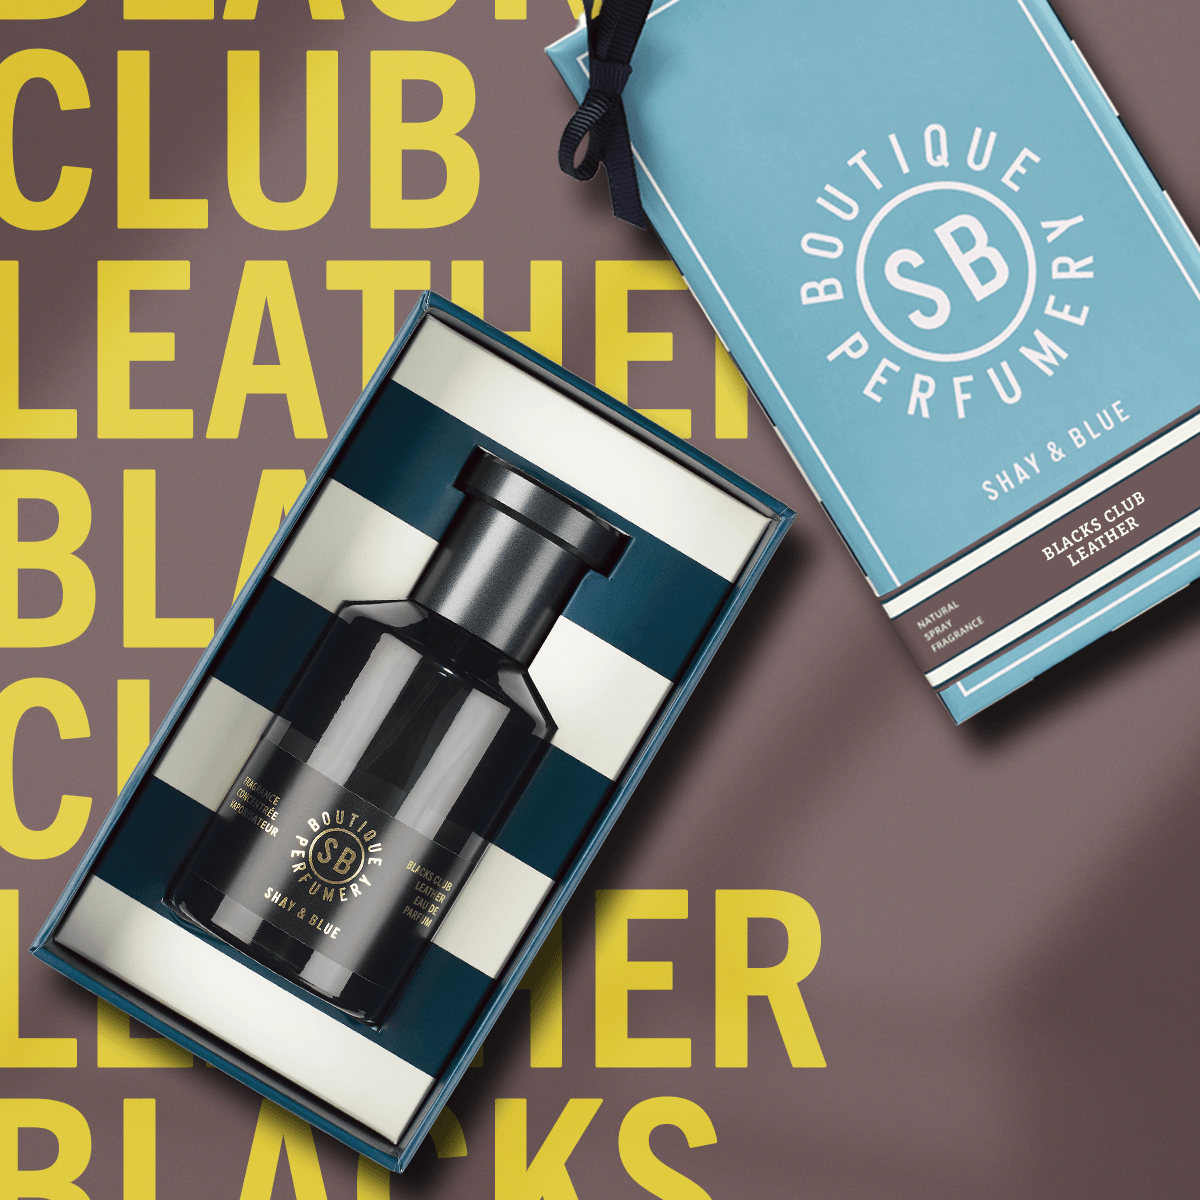 Blacks Club Leather Fragrance Concentrate 10ml